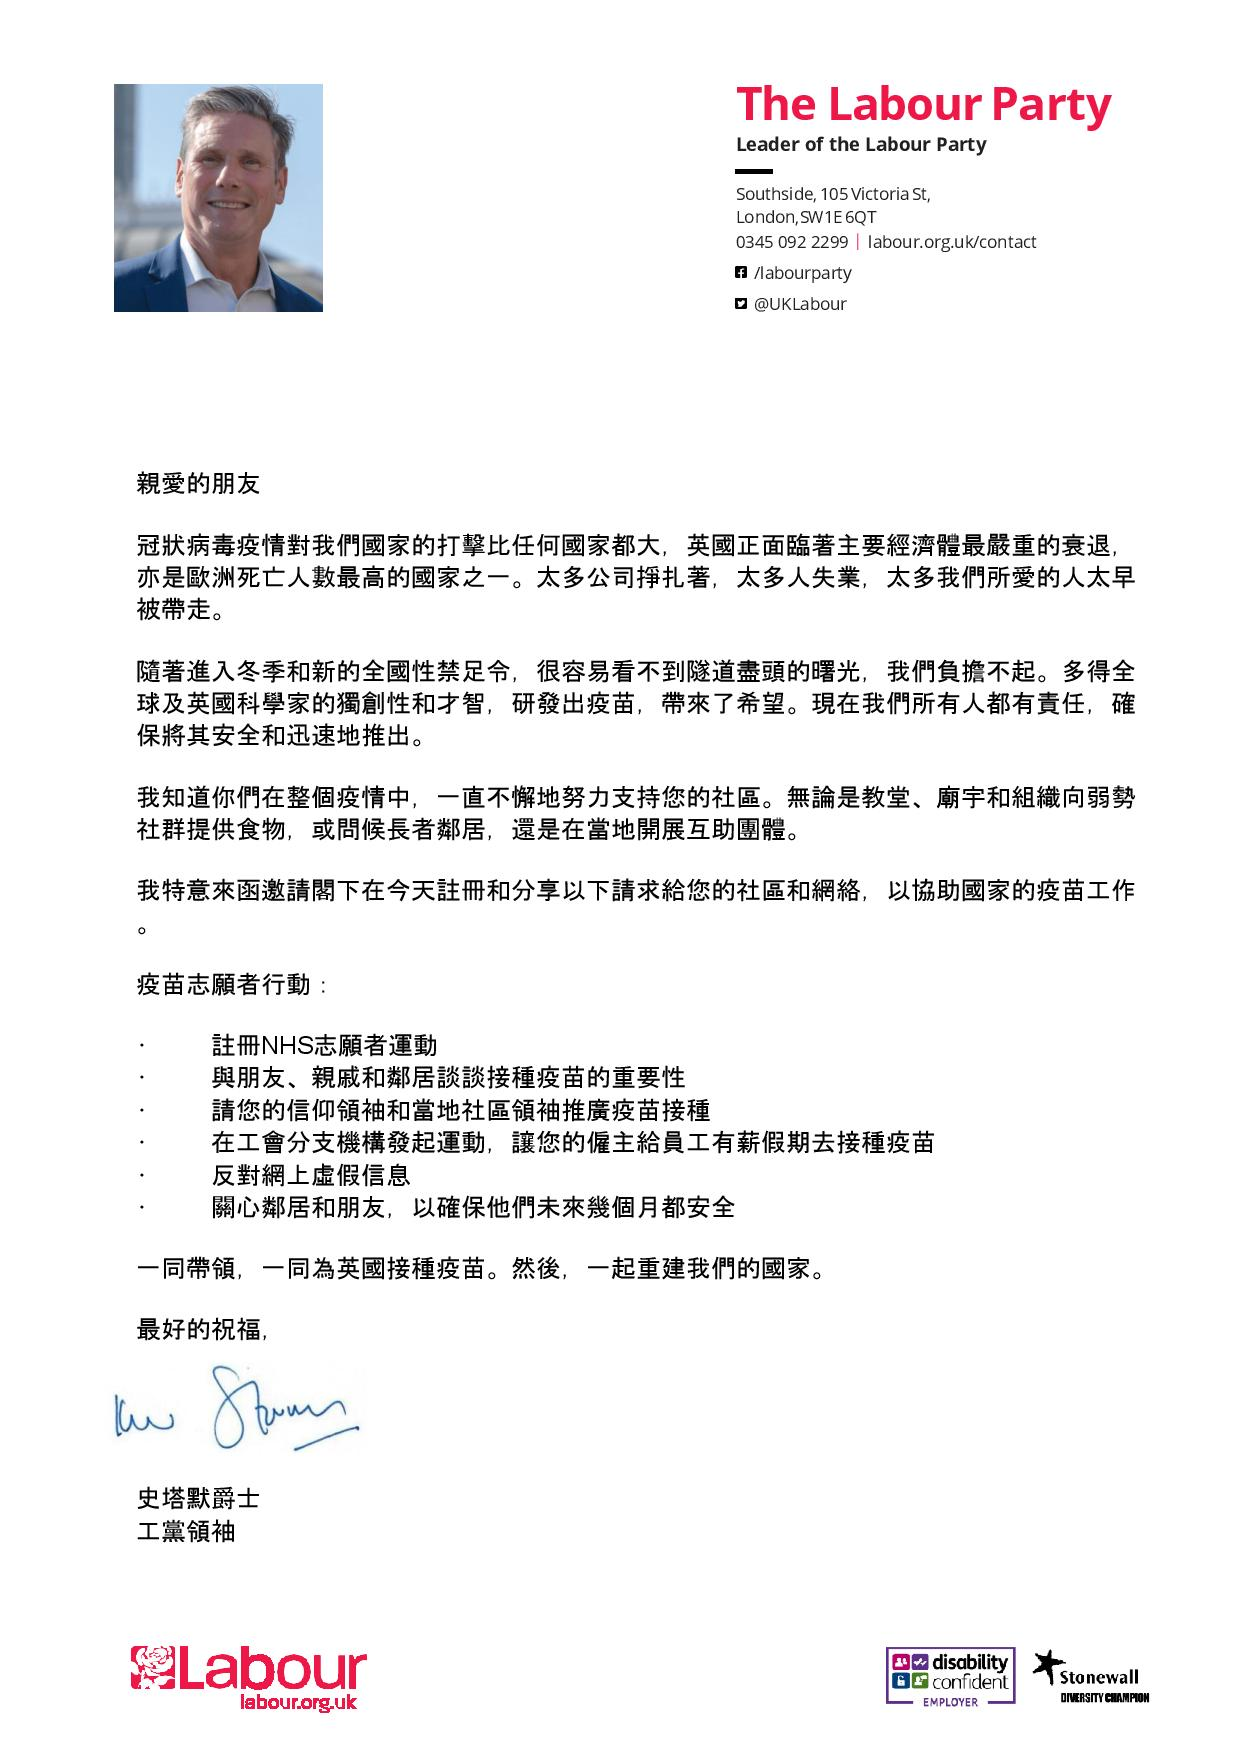 Letter_from_Keir_Starmer_-_Traditional_Chinese_-page-001.jpg